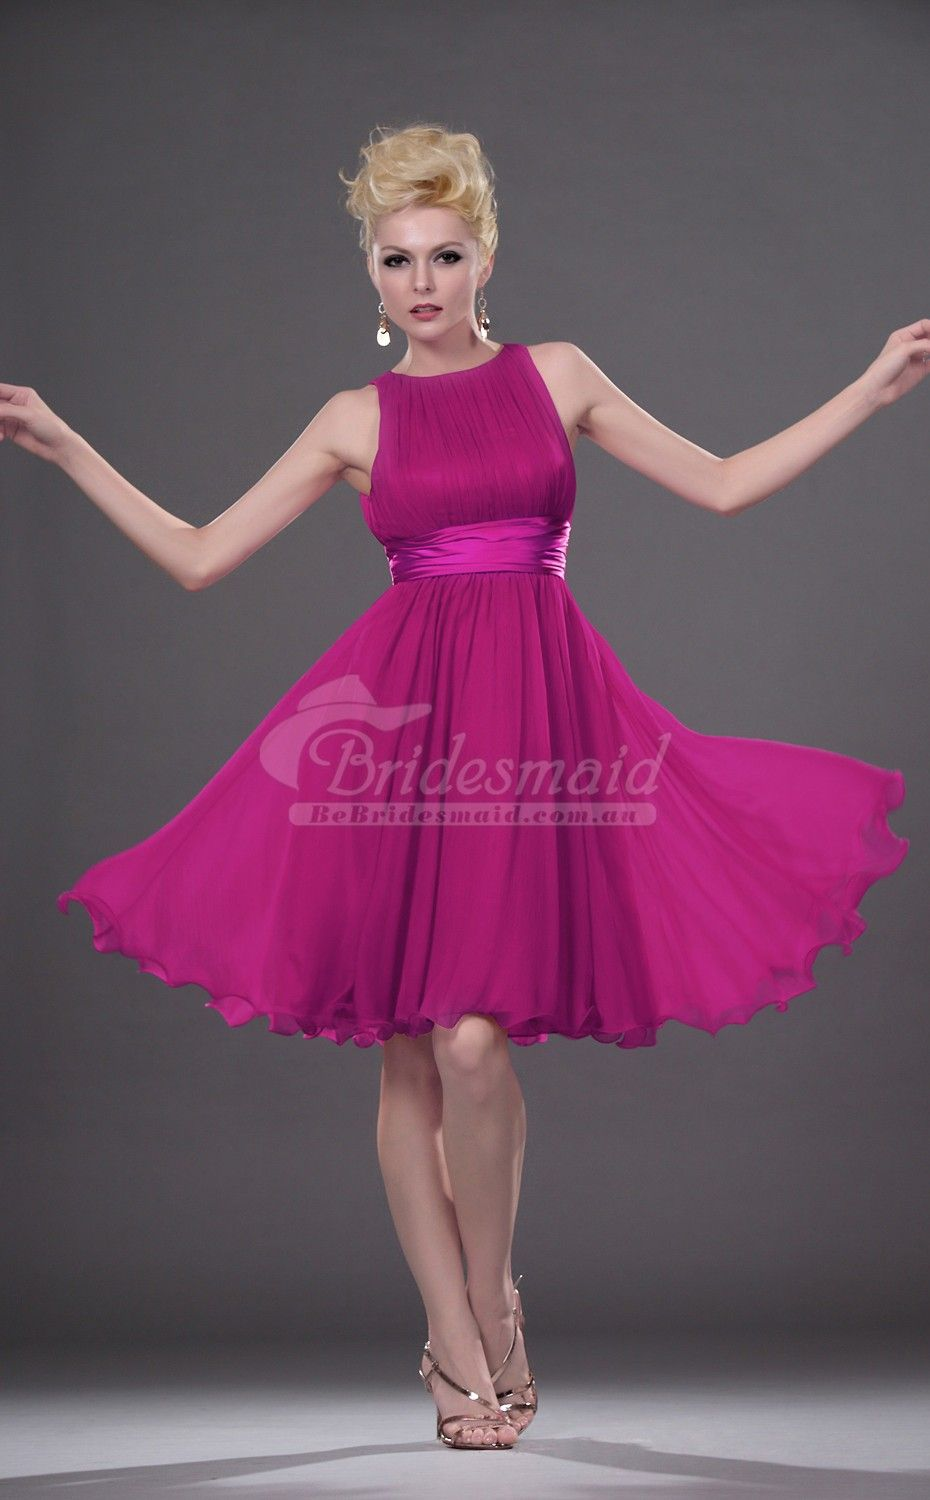 BeBridesmaid-Best Fuchsia Satin Chiffon Jewel Mini/Short Bridesmiad ...